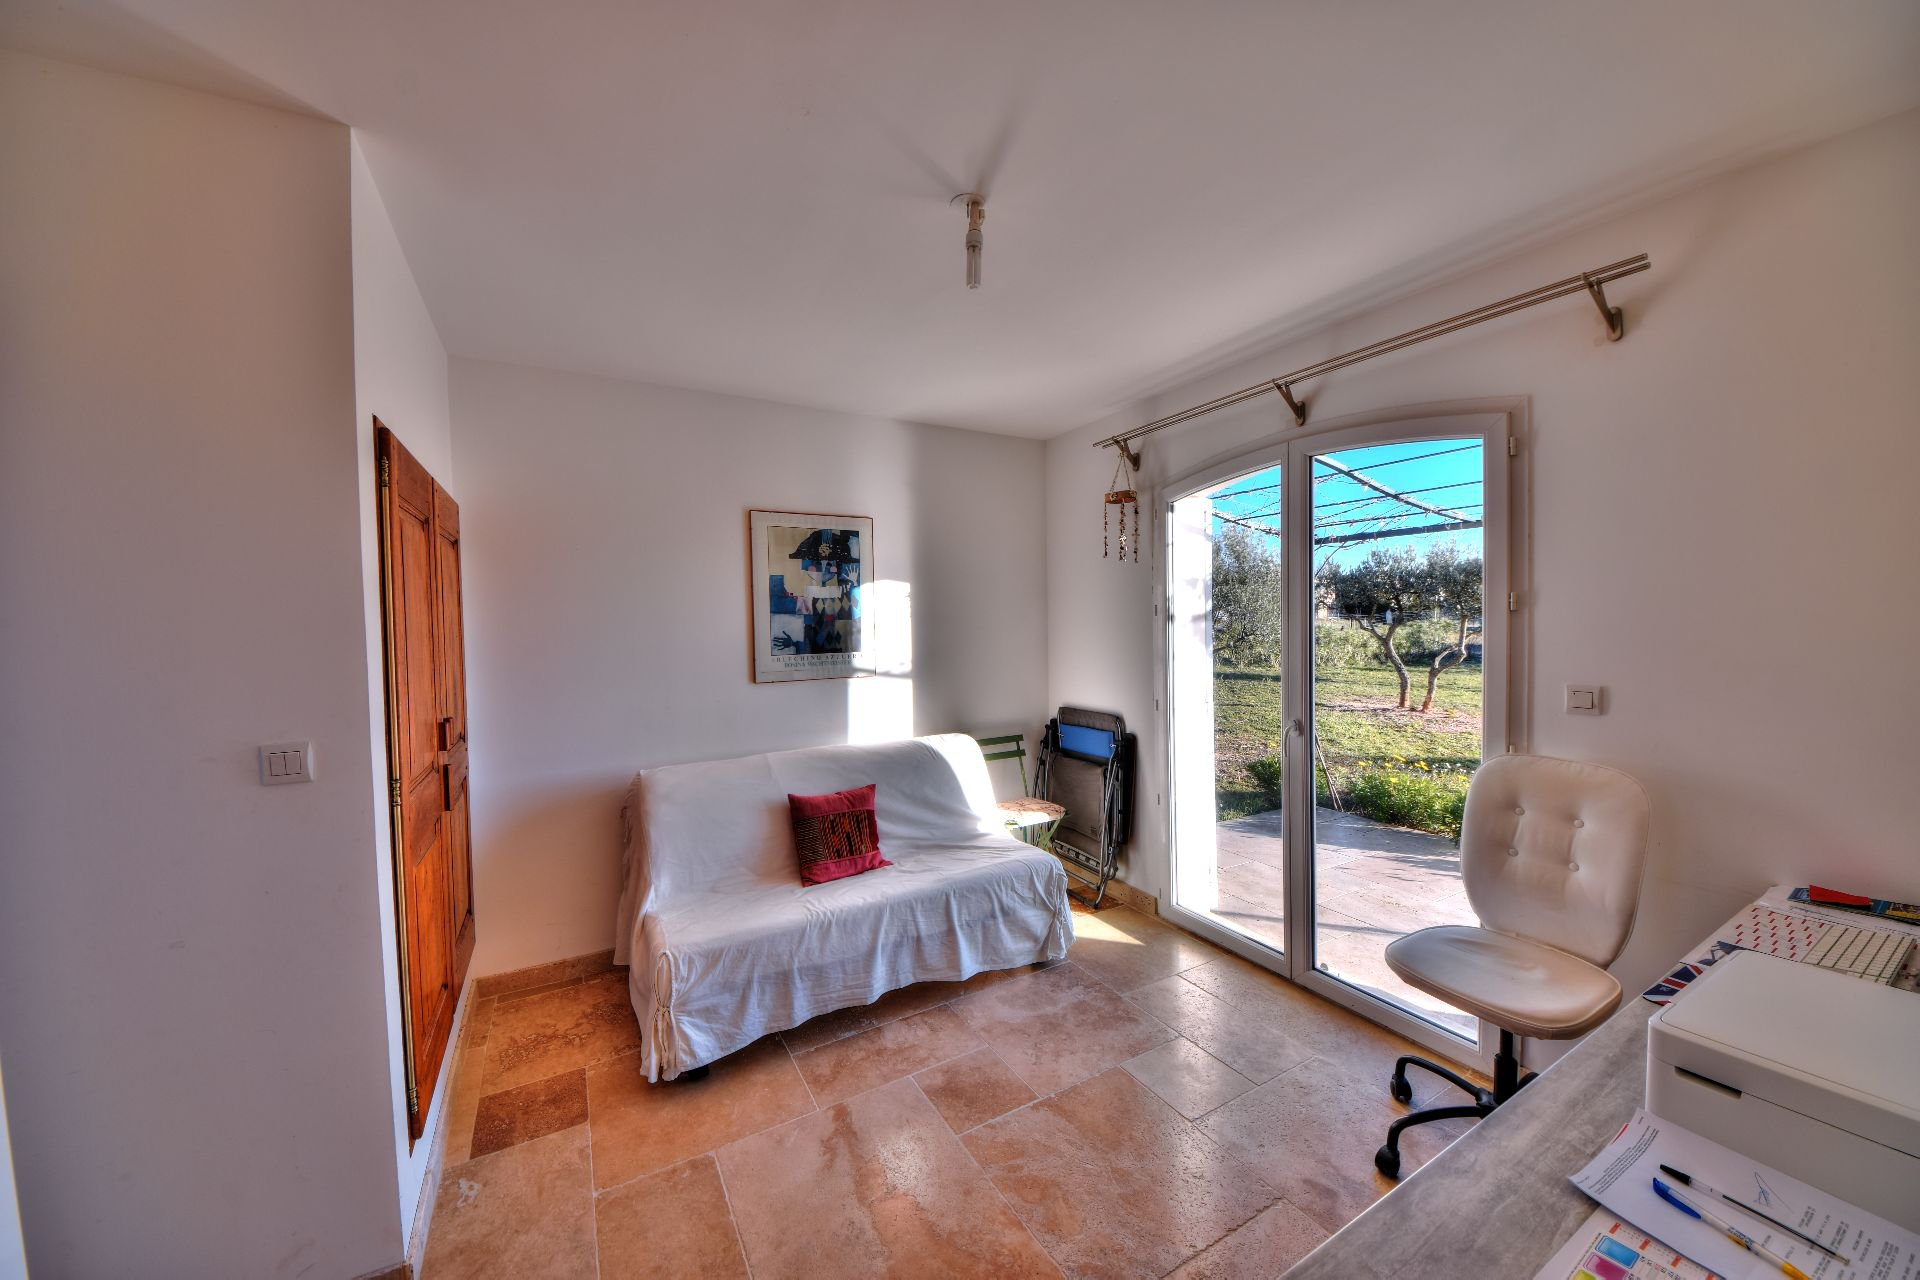 Room with bathroom on the ground floor of the bastide 4 rooms with swimming pool Aups, Var, Provence